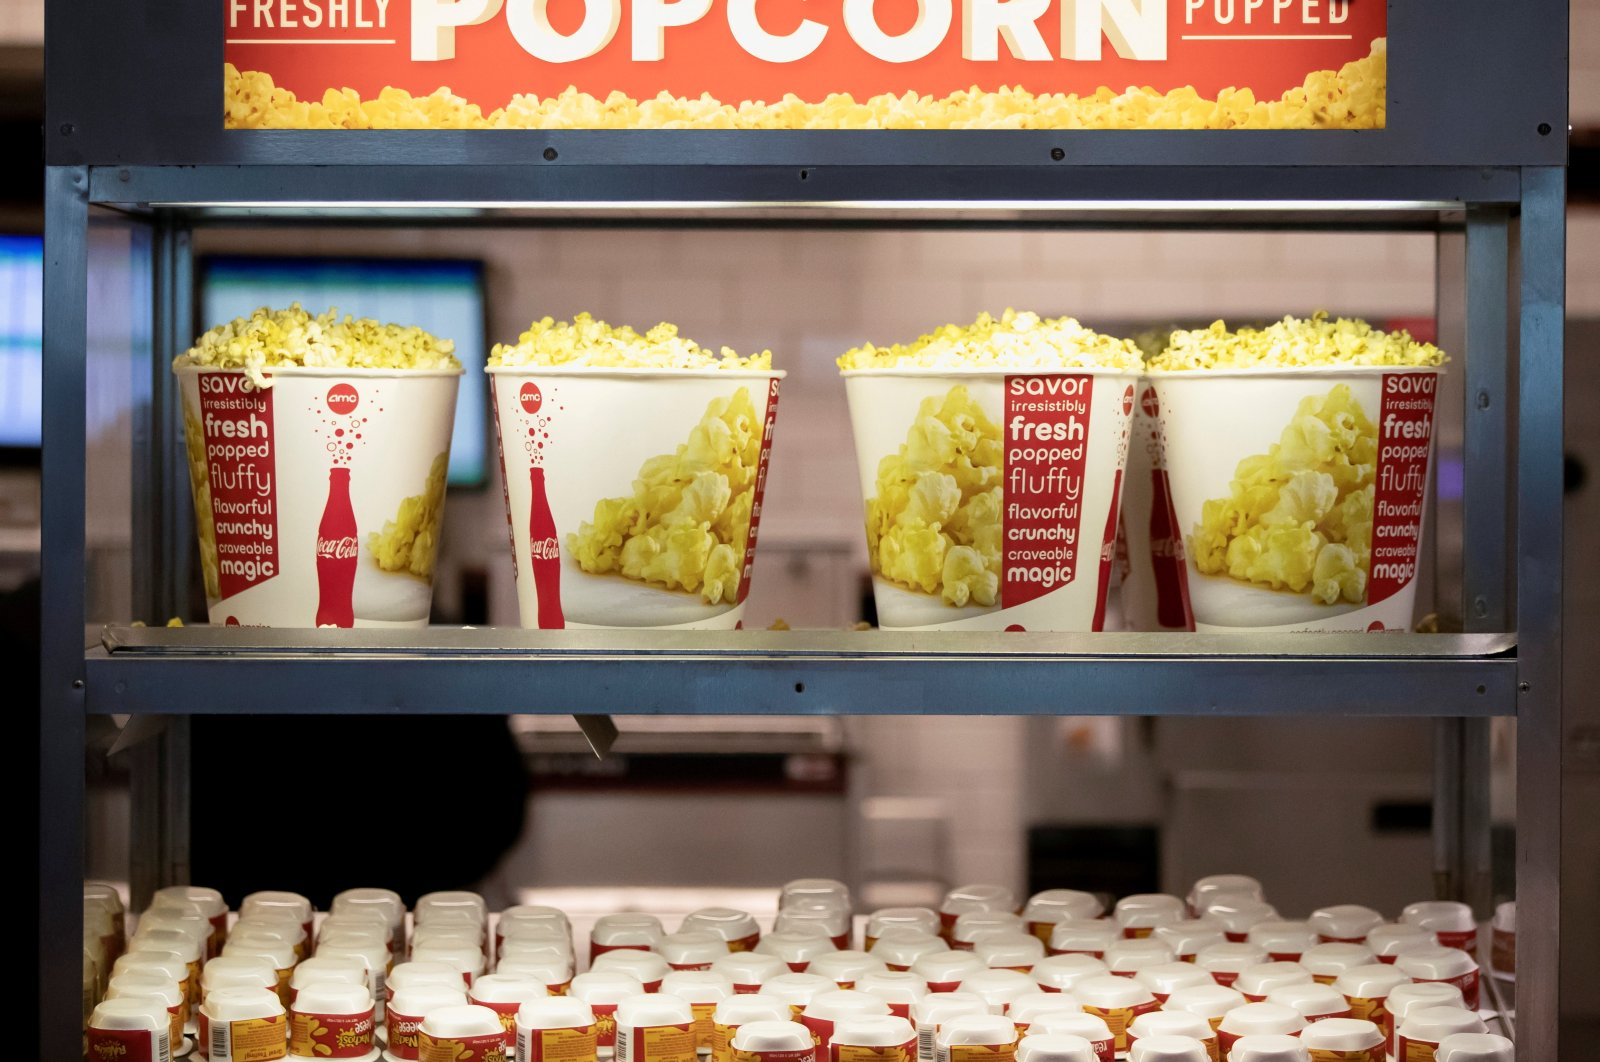 Fresh popcorn is pictured at an AMC theater on reopening day during the COVID-19 outbreak, in Burbank, California, U.S., March 15, 2021. (Reuters Photo)